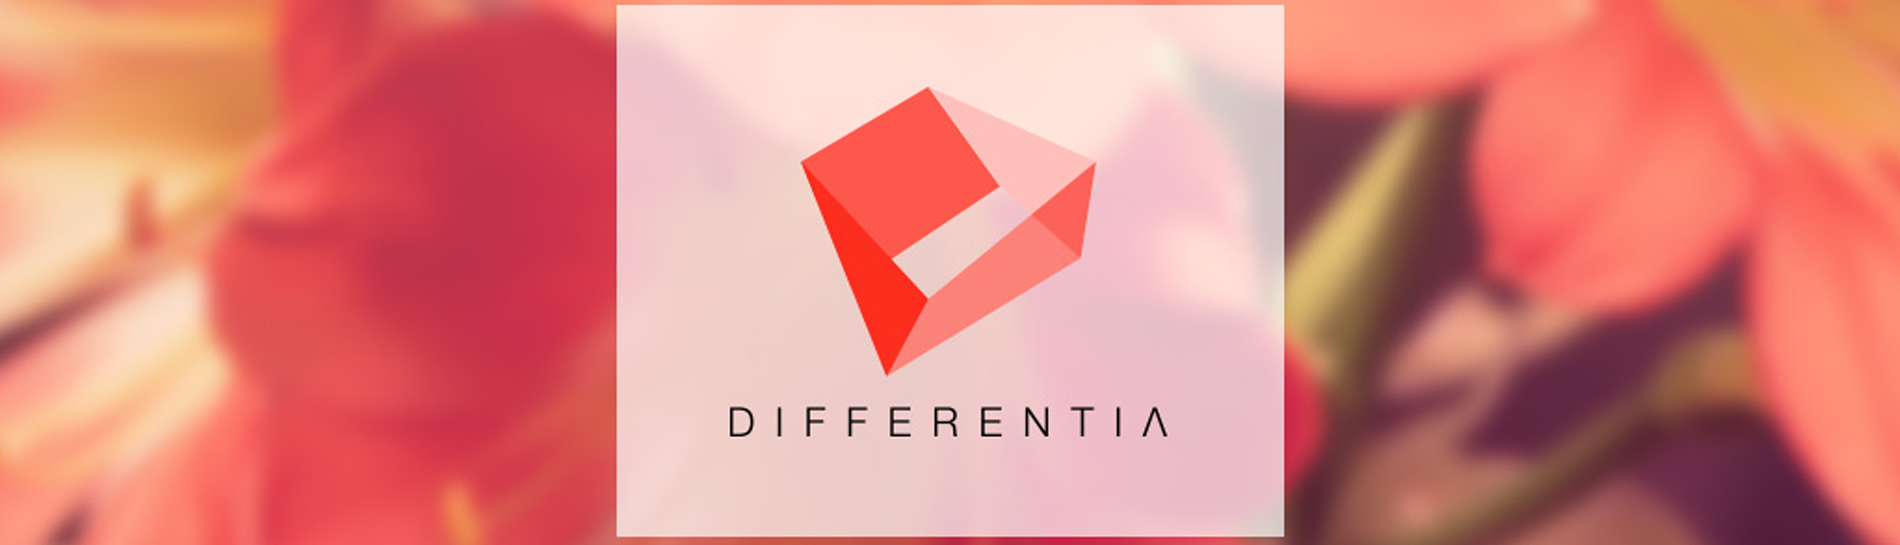 TEDxStockholm | DIFFERENTIA | 16th February 2015